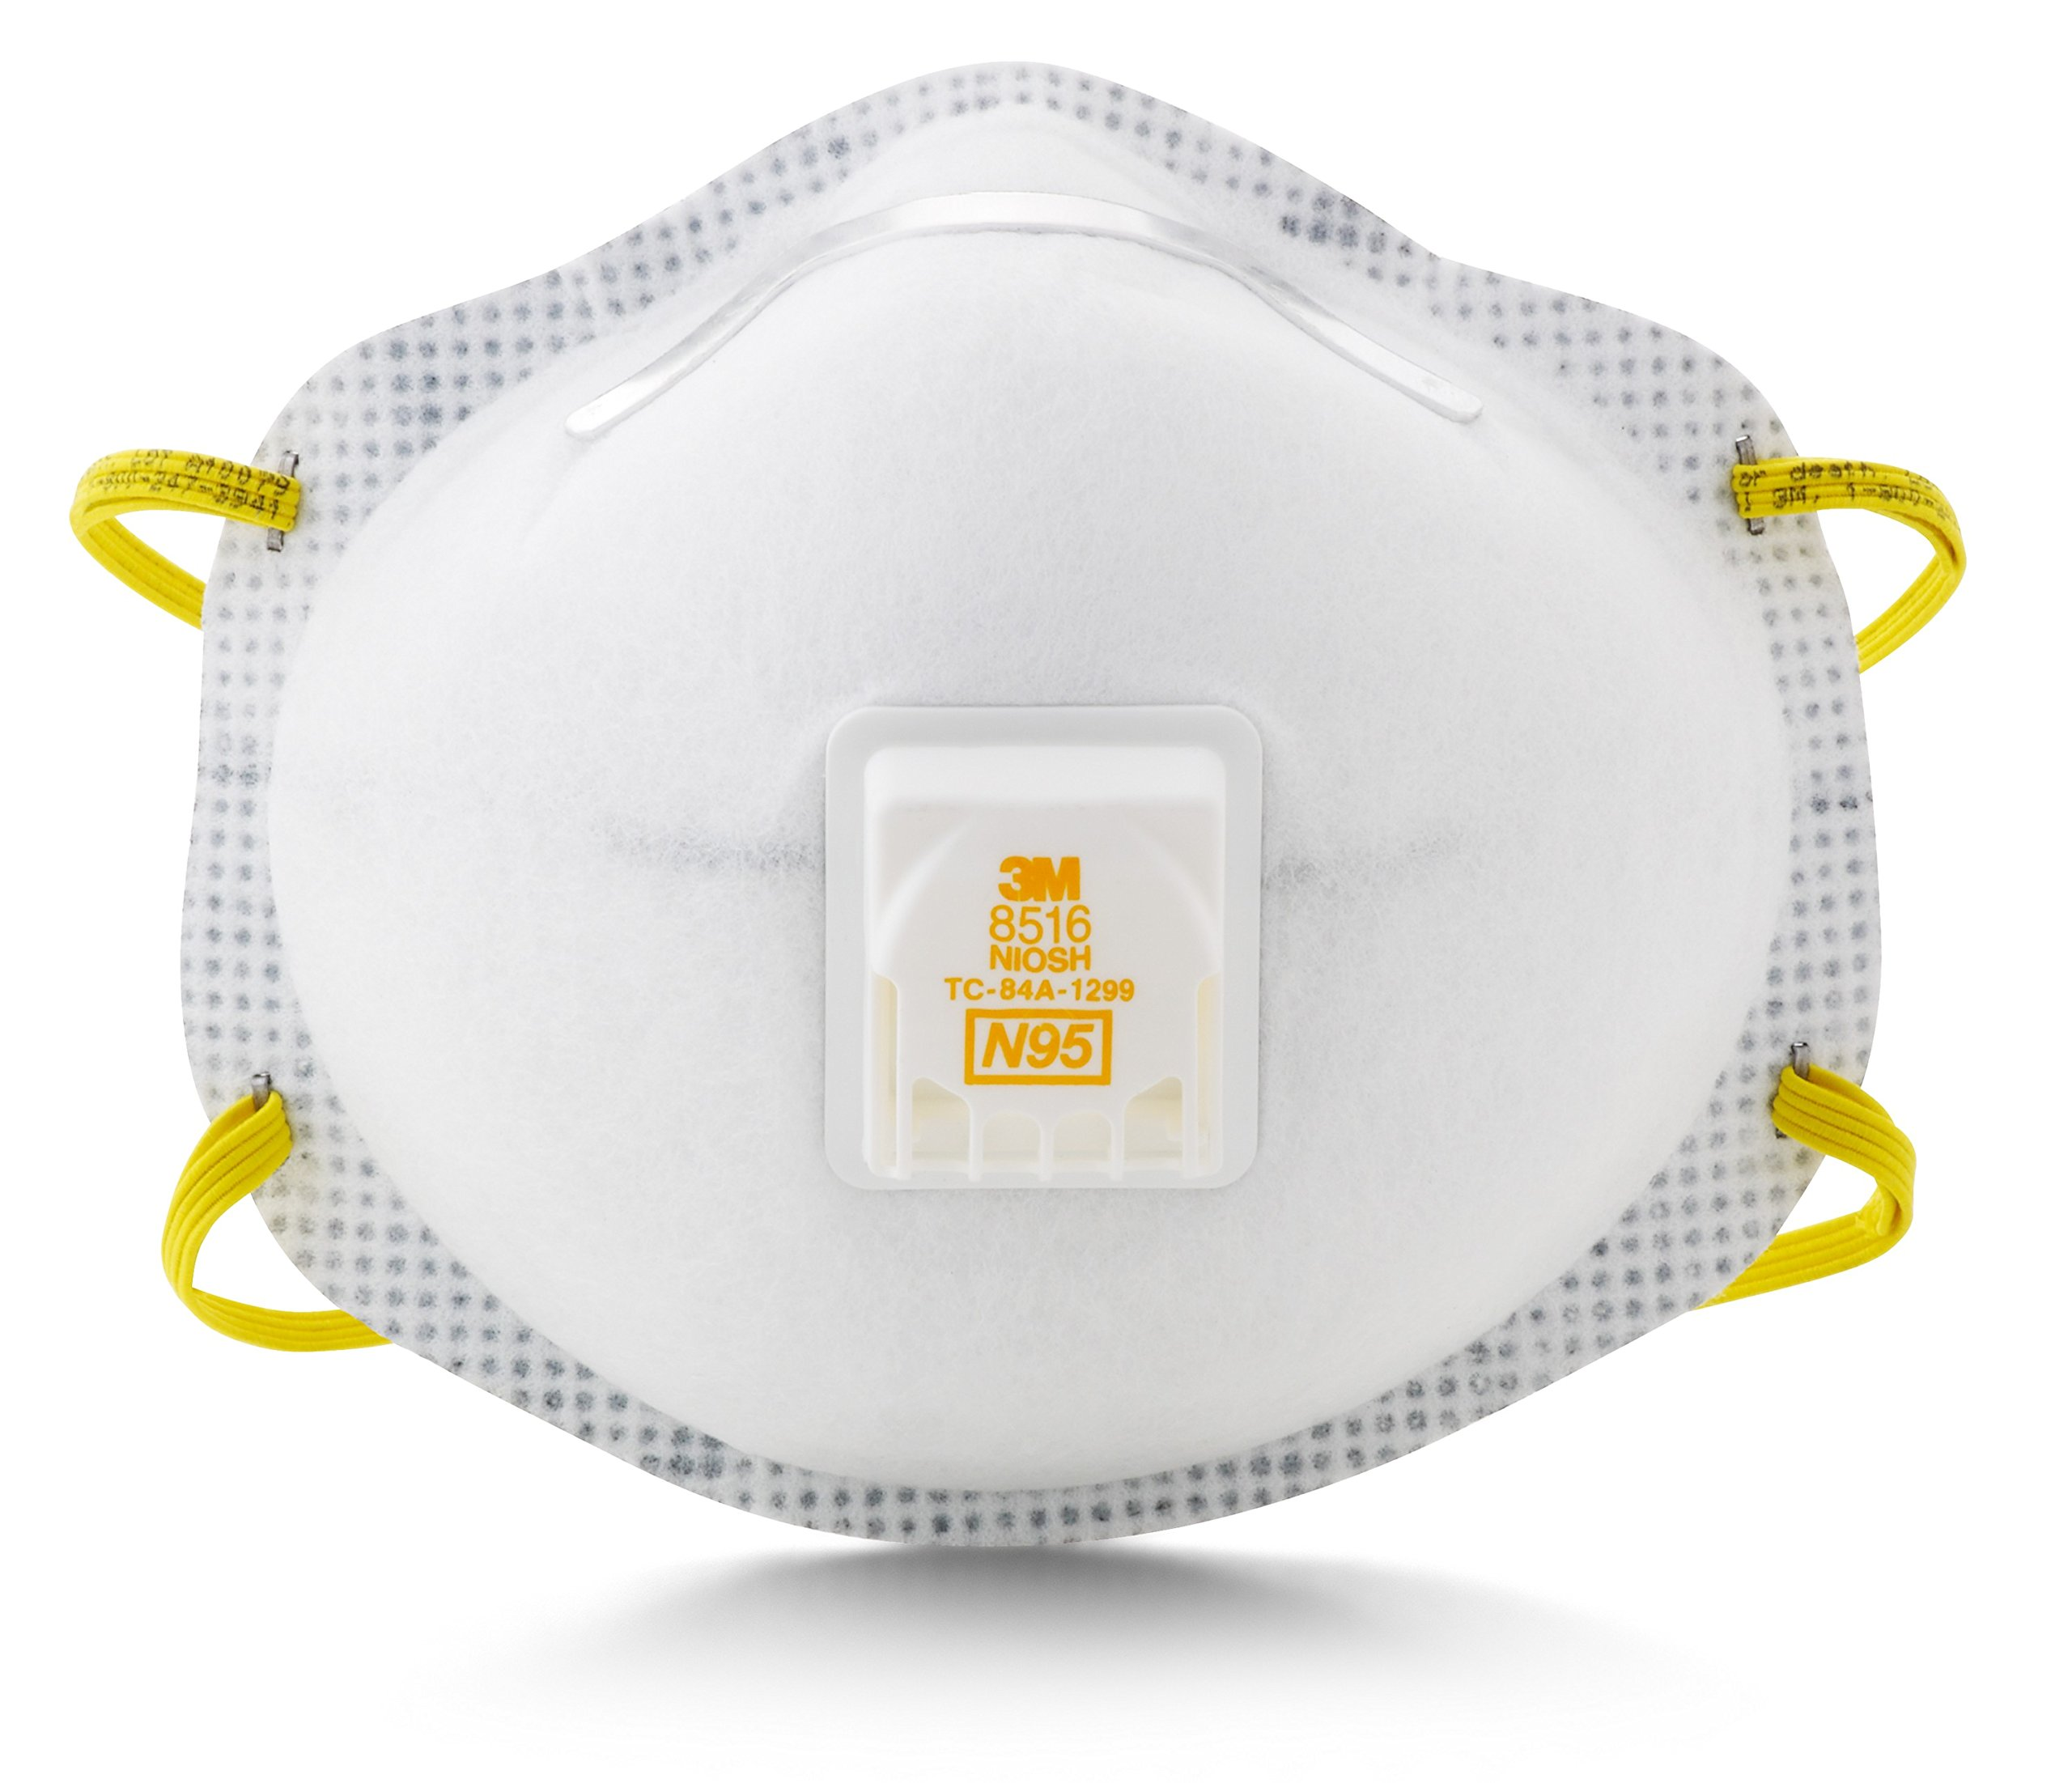 3M Particulate Respirator 8516, N95, with Nuisance Level Acid Gas Relief (Pack of 10) by 3M Personal Protective Equipment (Image #2)